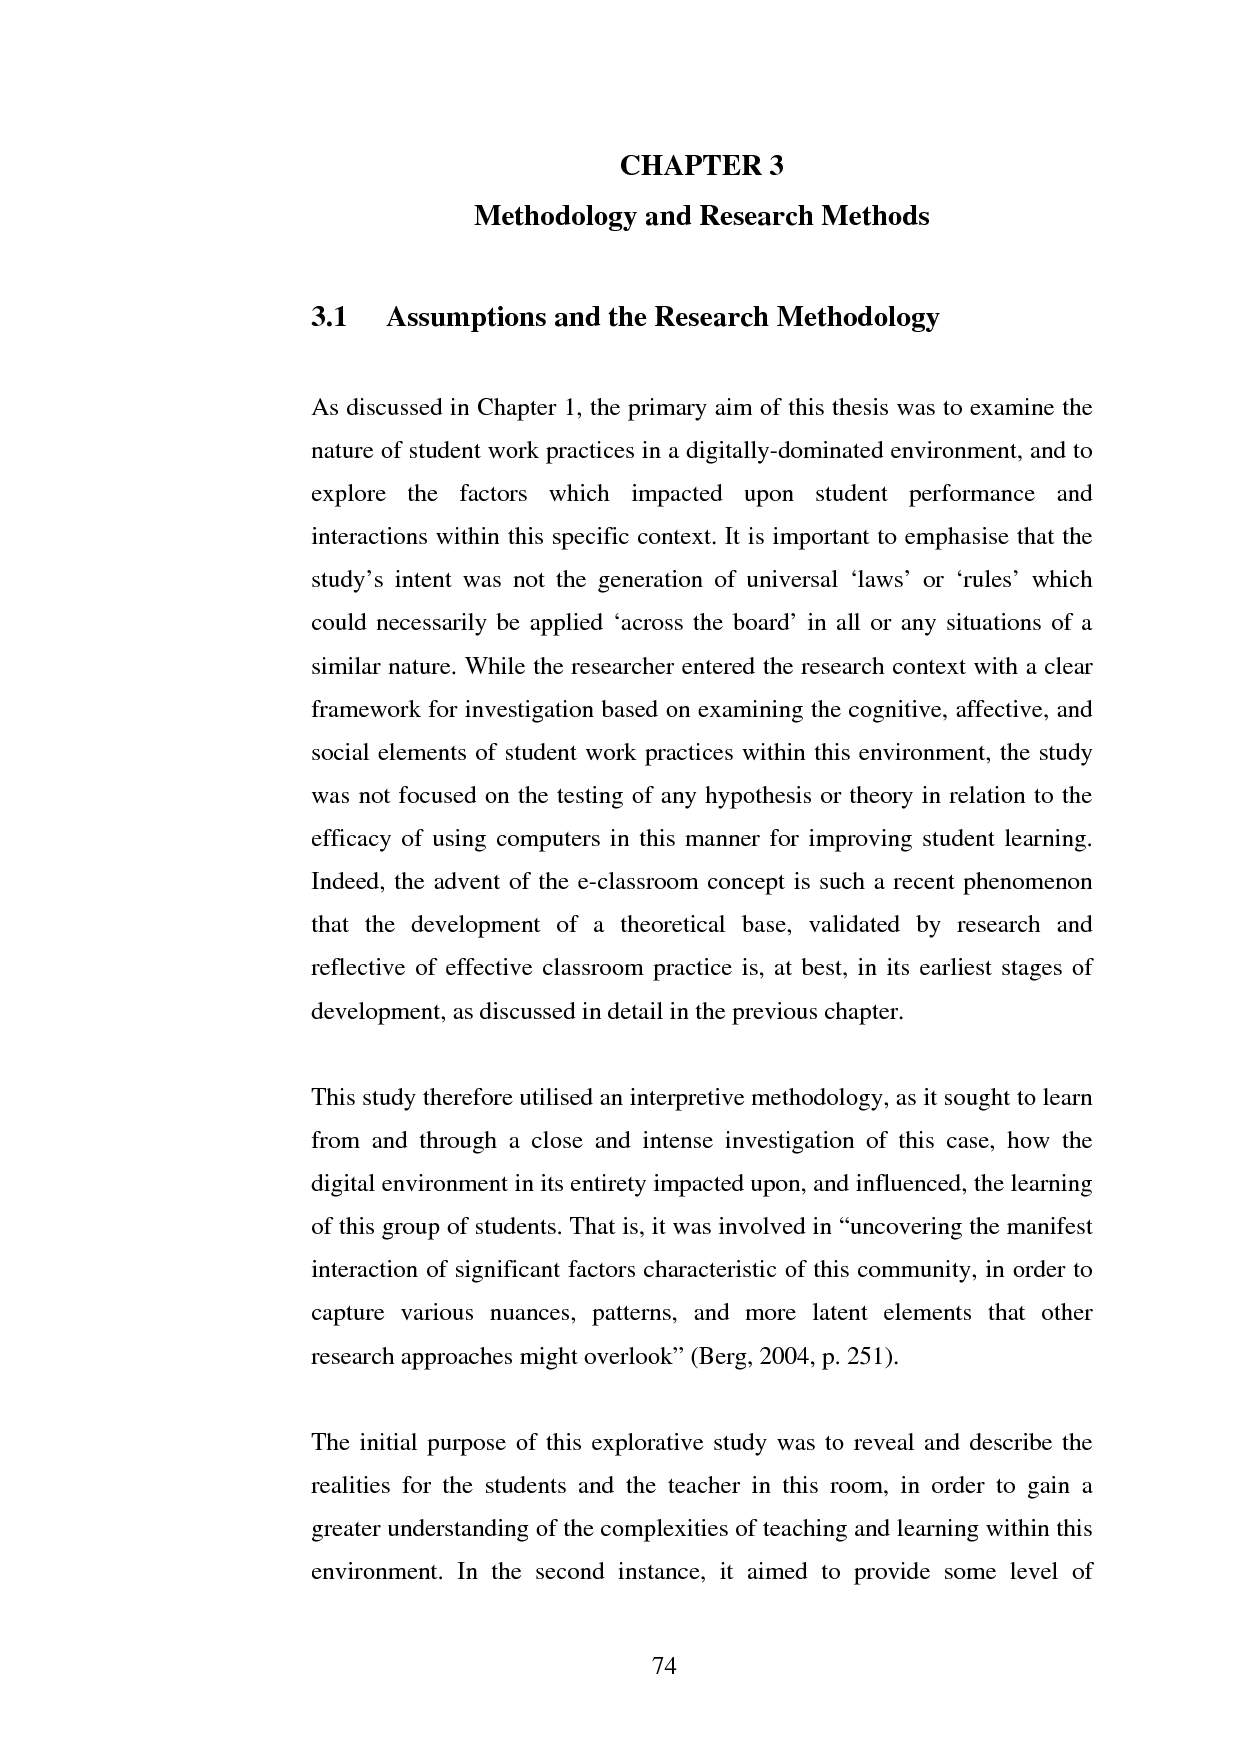 Phd thesis research methods